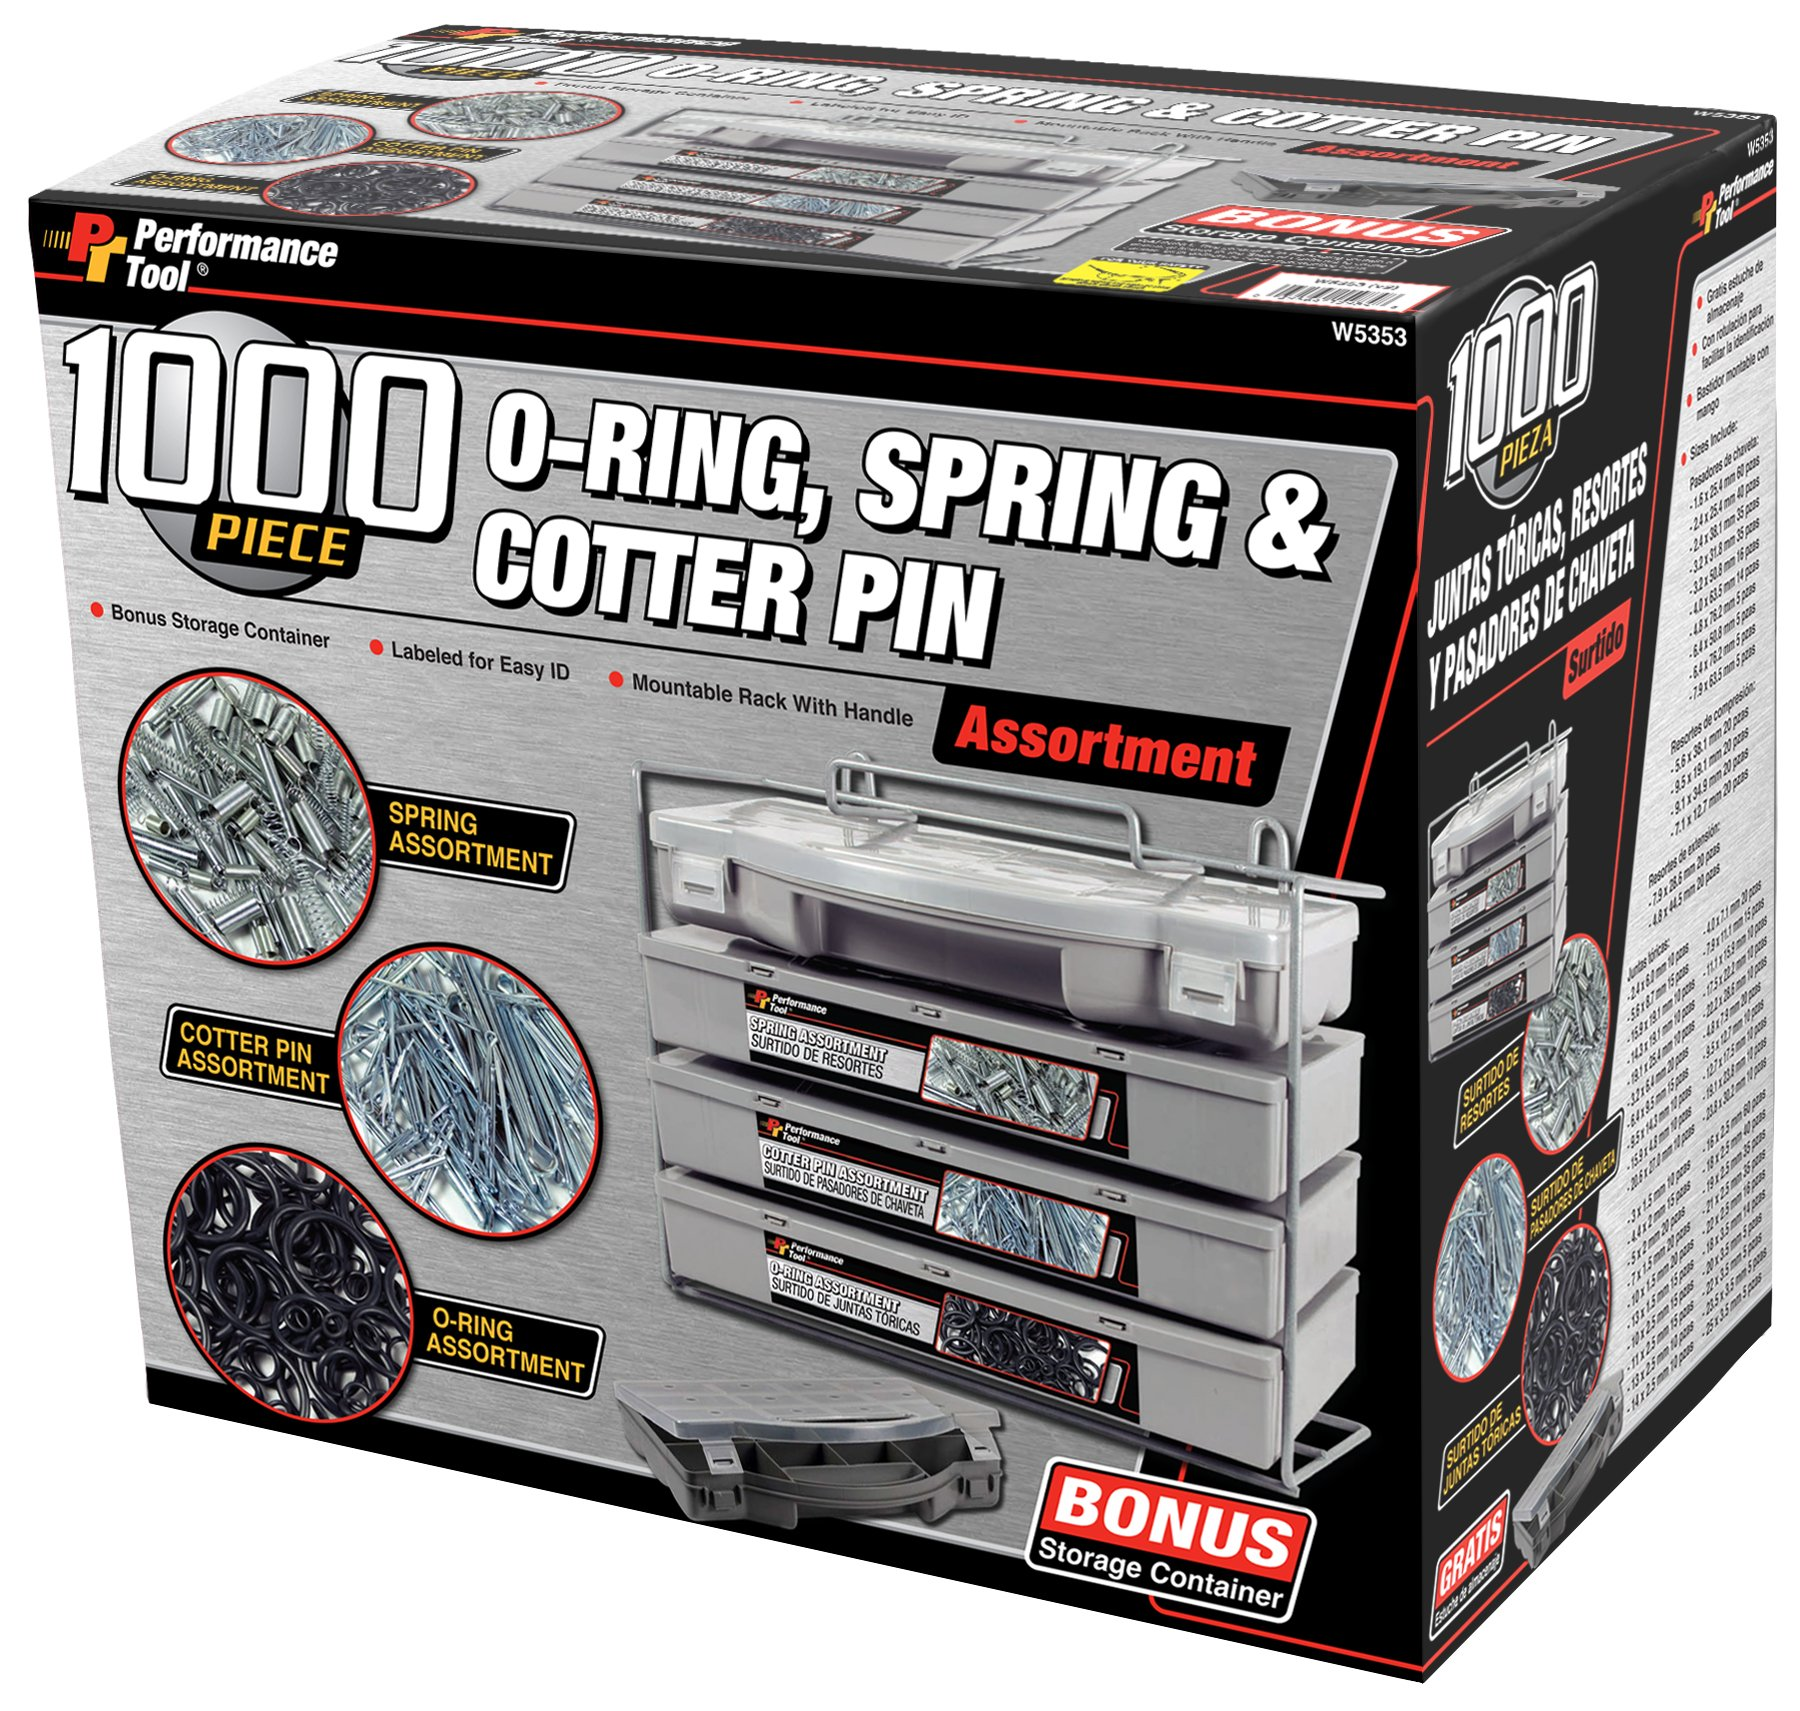 Performance Tool W5353 O-Ring, Spring, Cotter Pin, Assortment With Mountable Rack (1000-Piece Set)